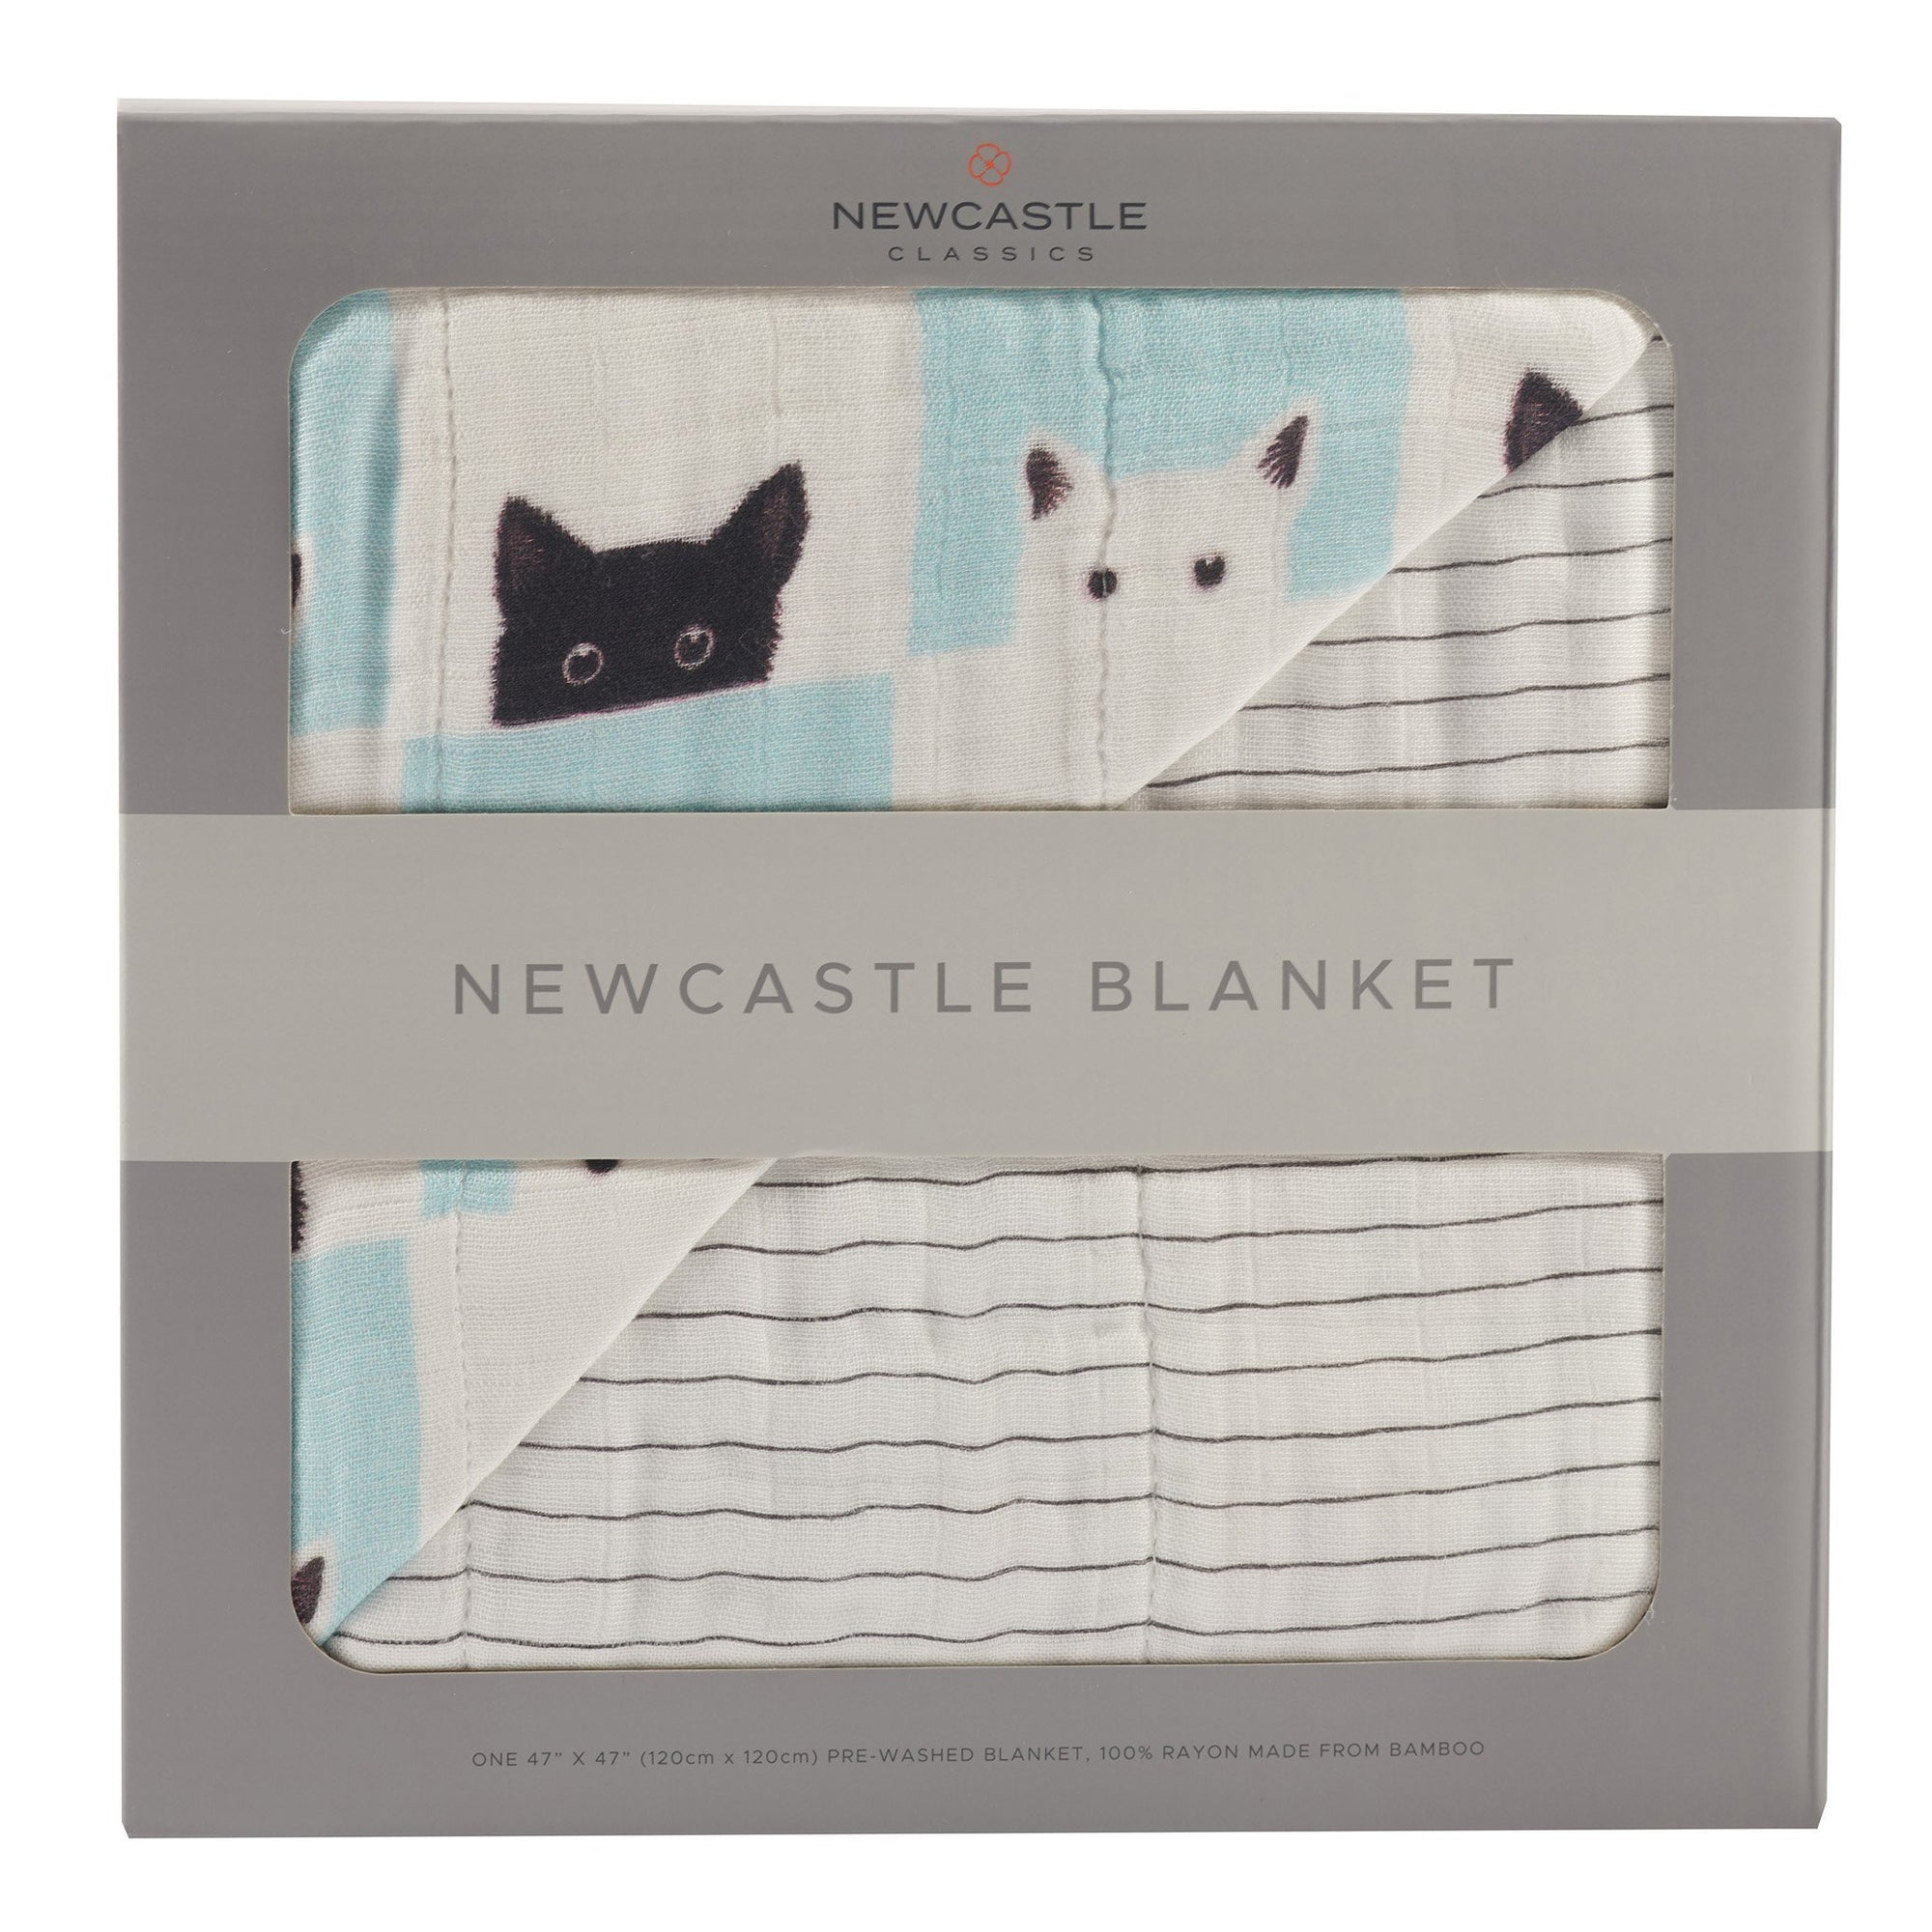 Peek-A-Boo Cats Newcastle Blanket - Baby World Inc